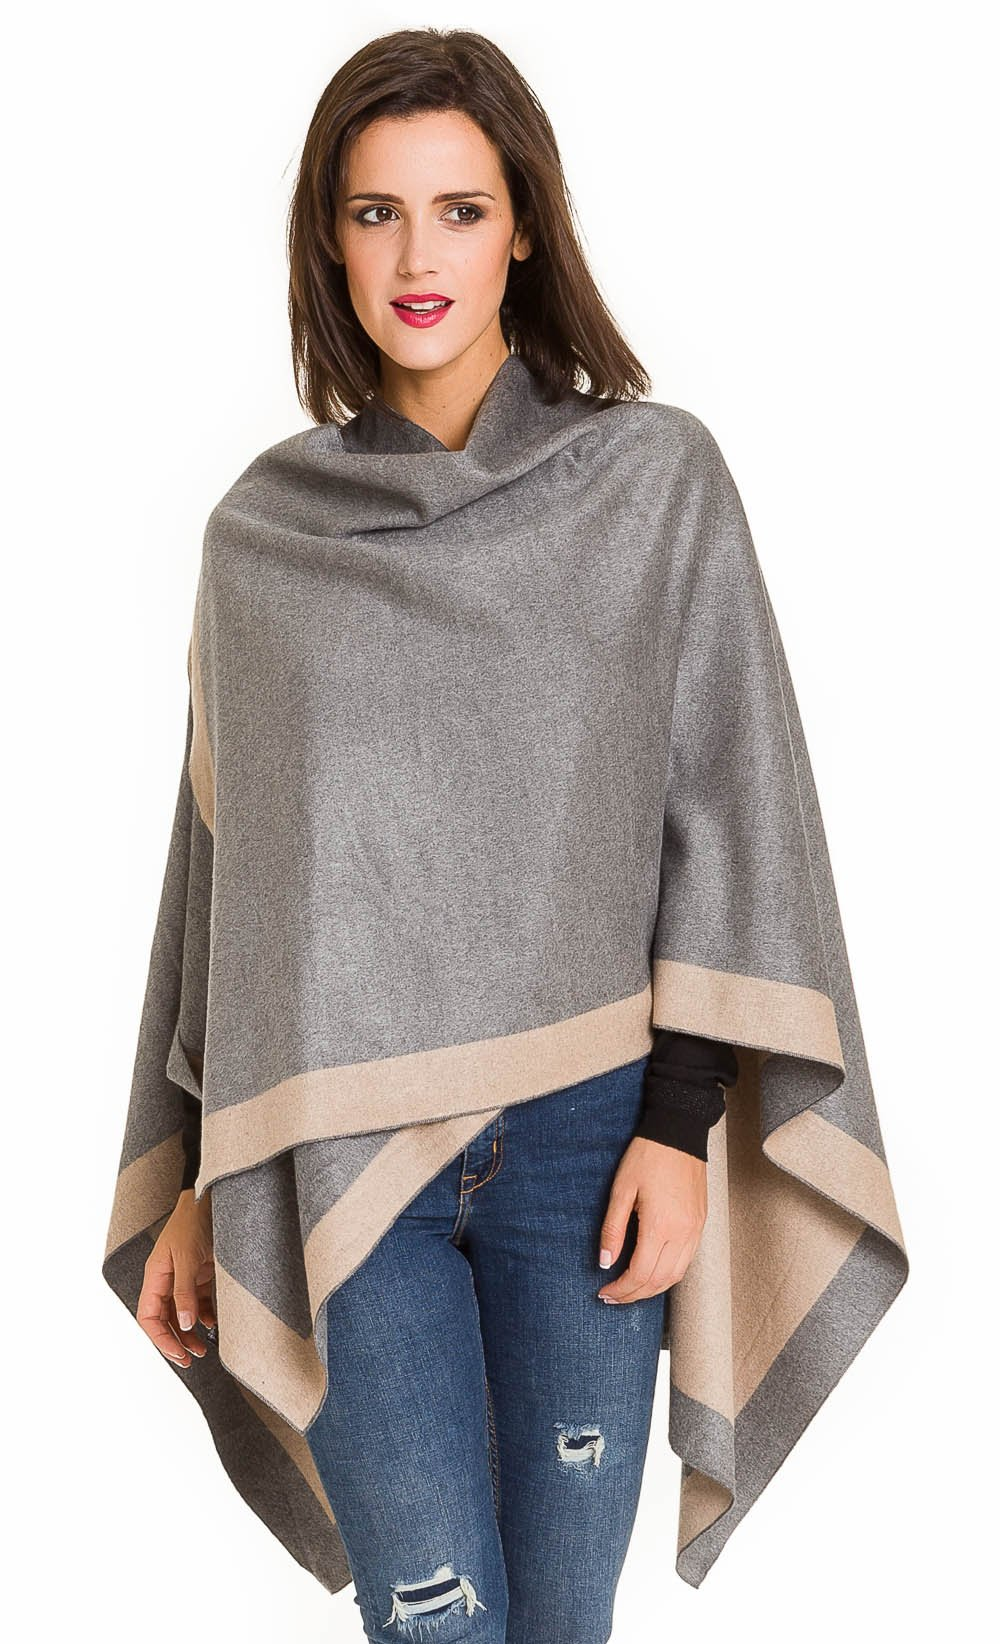 Cardigan Poncho Cape: Women Elegant Gray Beige Reversible Cardigan Shawl Wrap Sweater Coat for Winter (Light Gray Beige) by MELIFLUOS DESIGNED IN SPAIN (Image #4)